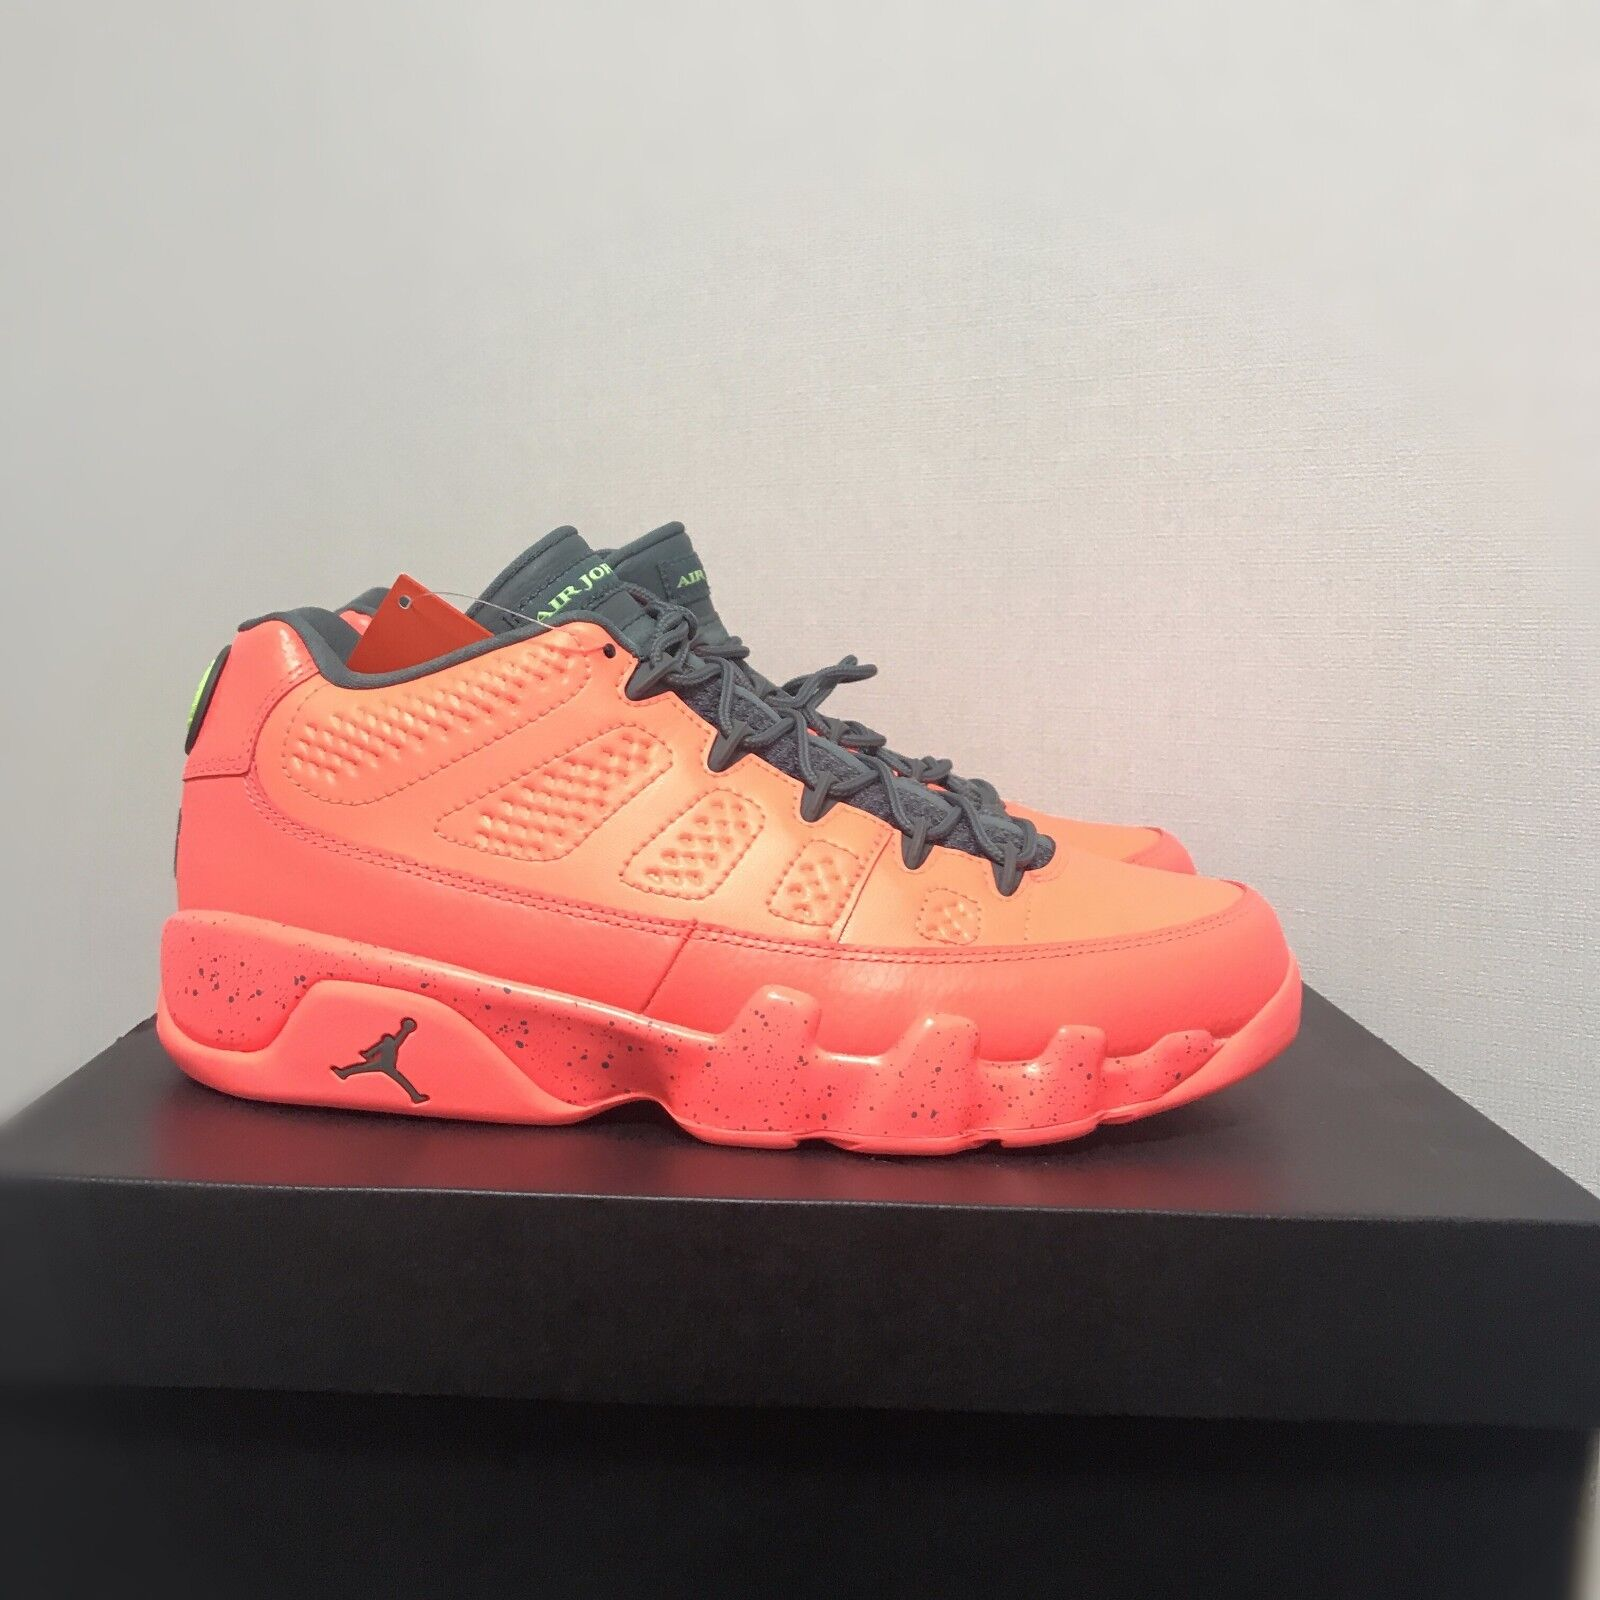 huge discount 0c03b 3d4c3 Air Jordan 9 Retro Low schuhe 832822-805 Bright Bright Bright Mango Größe  8-10 Limited 5e9181